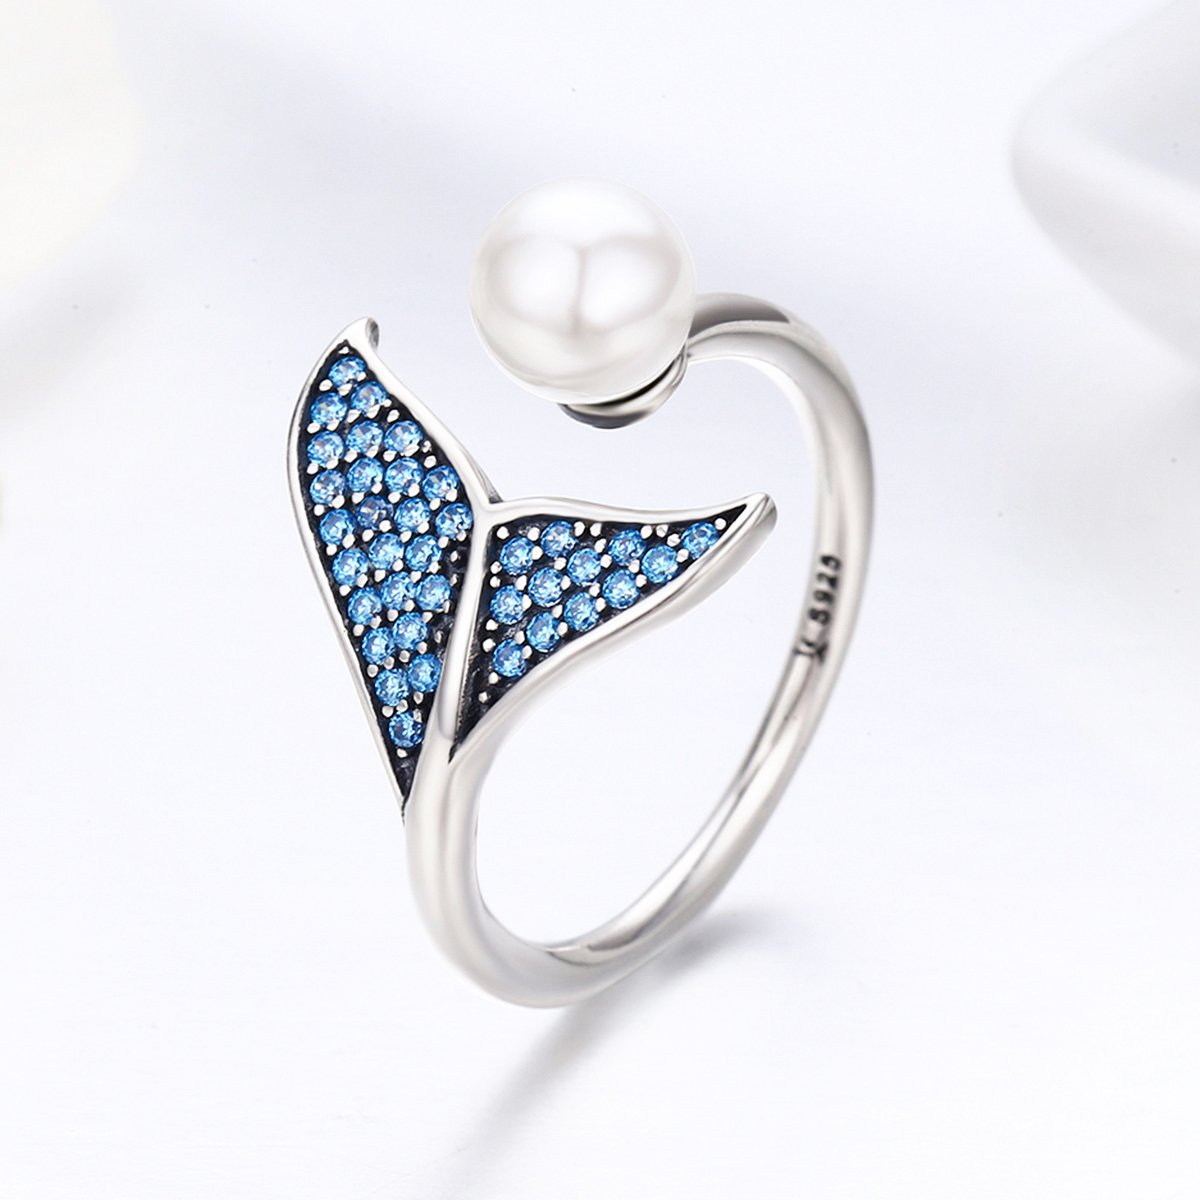 WOSTU Pearl Open Rings 925 Sterling Silver Wrap Around Twisted Rope Band Rings Adjustable Rings Size 6-9 CQR286+CP0024